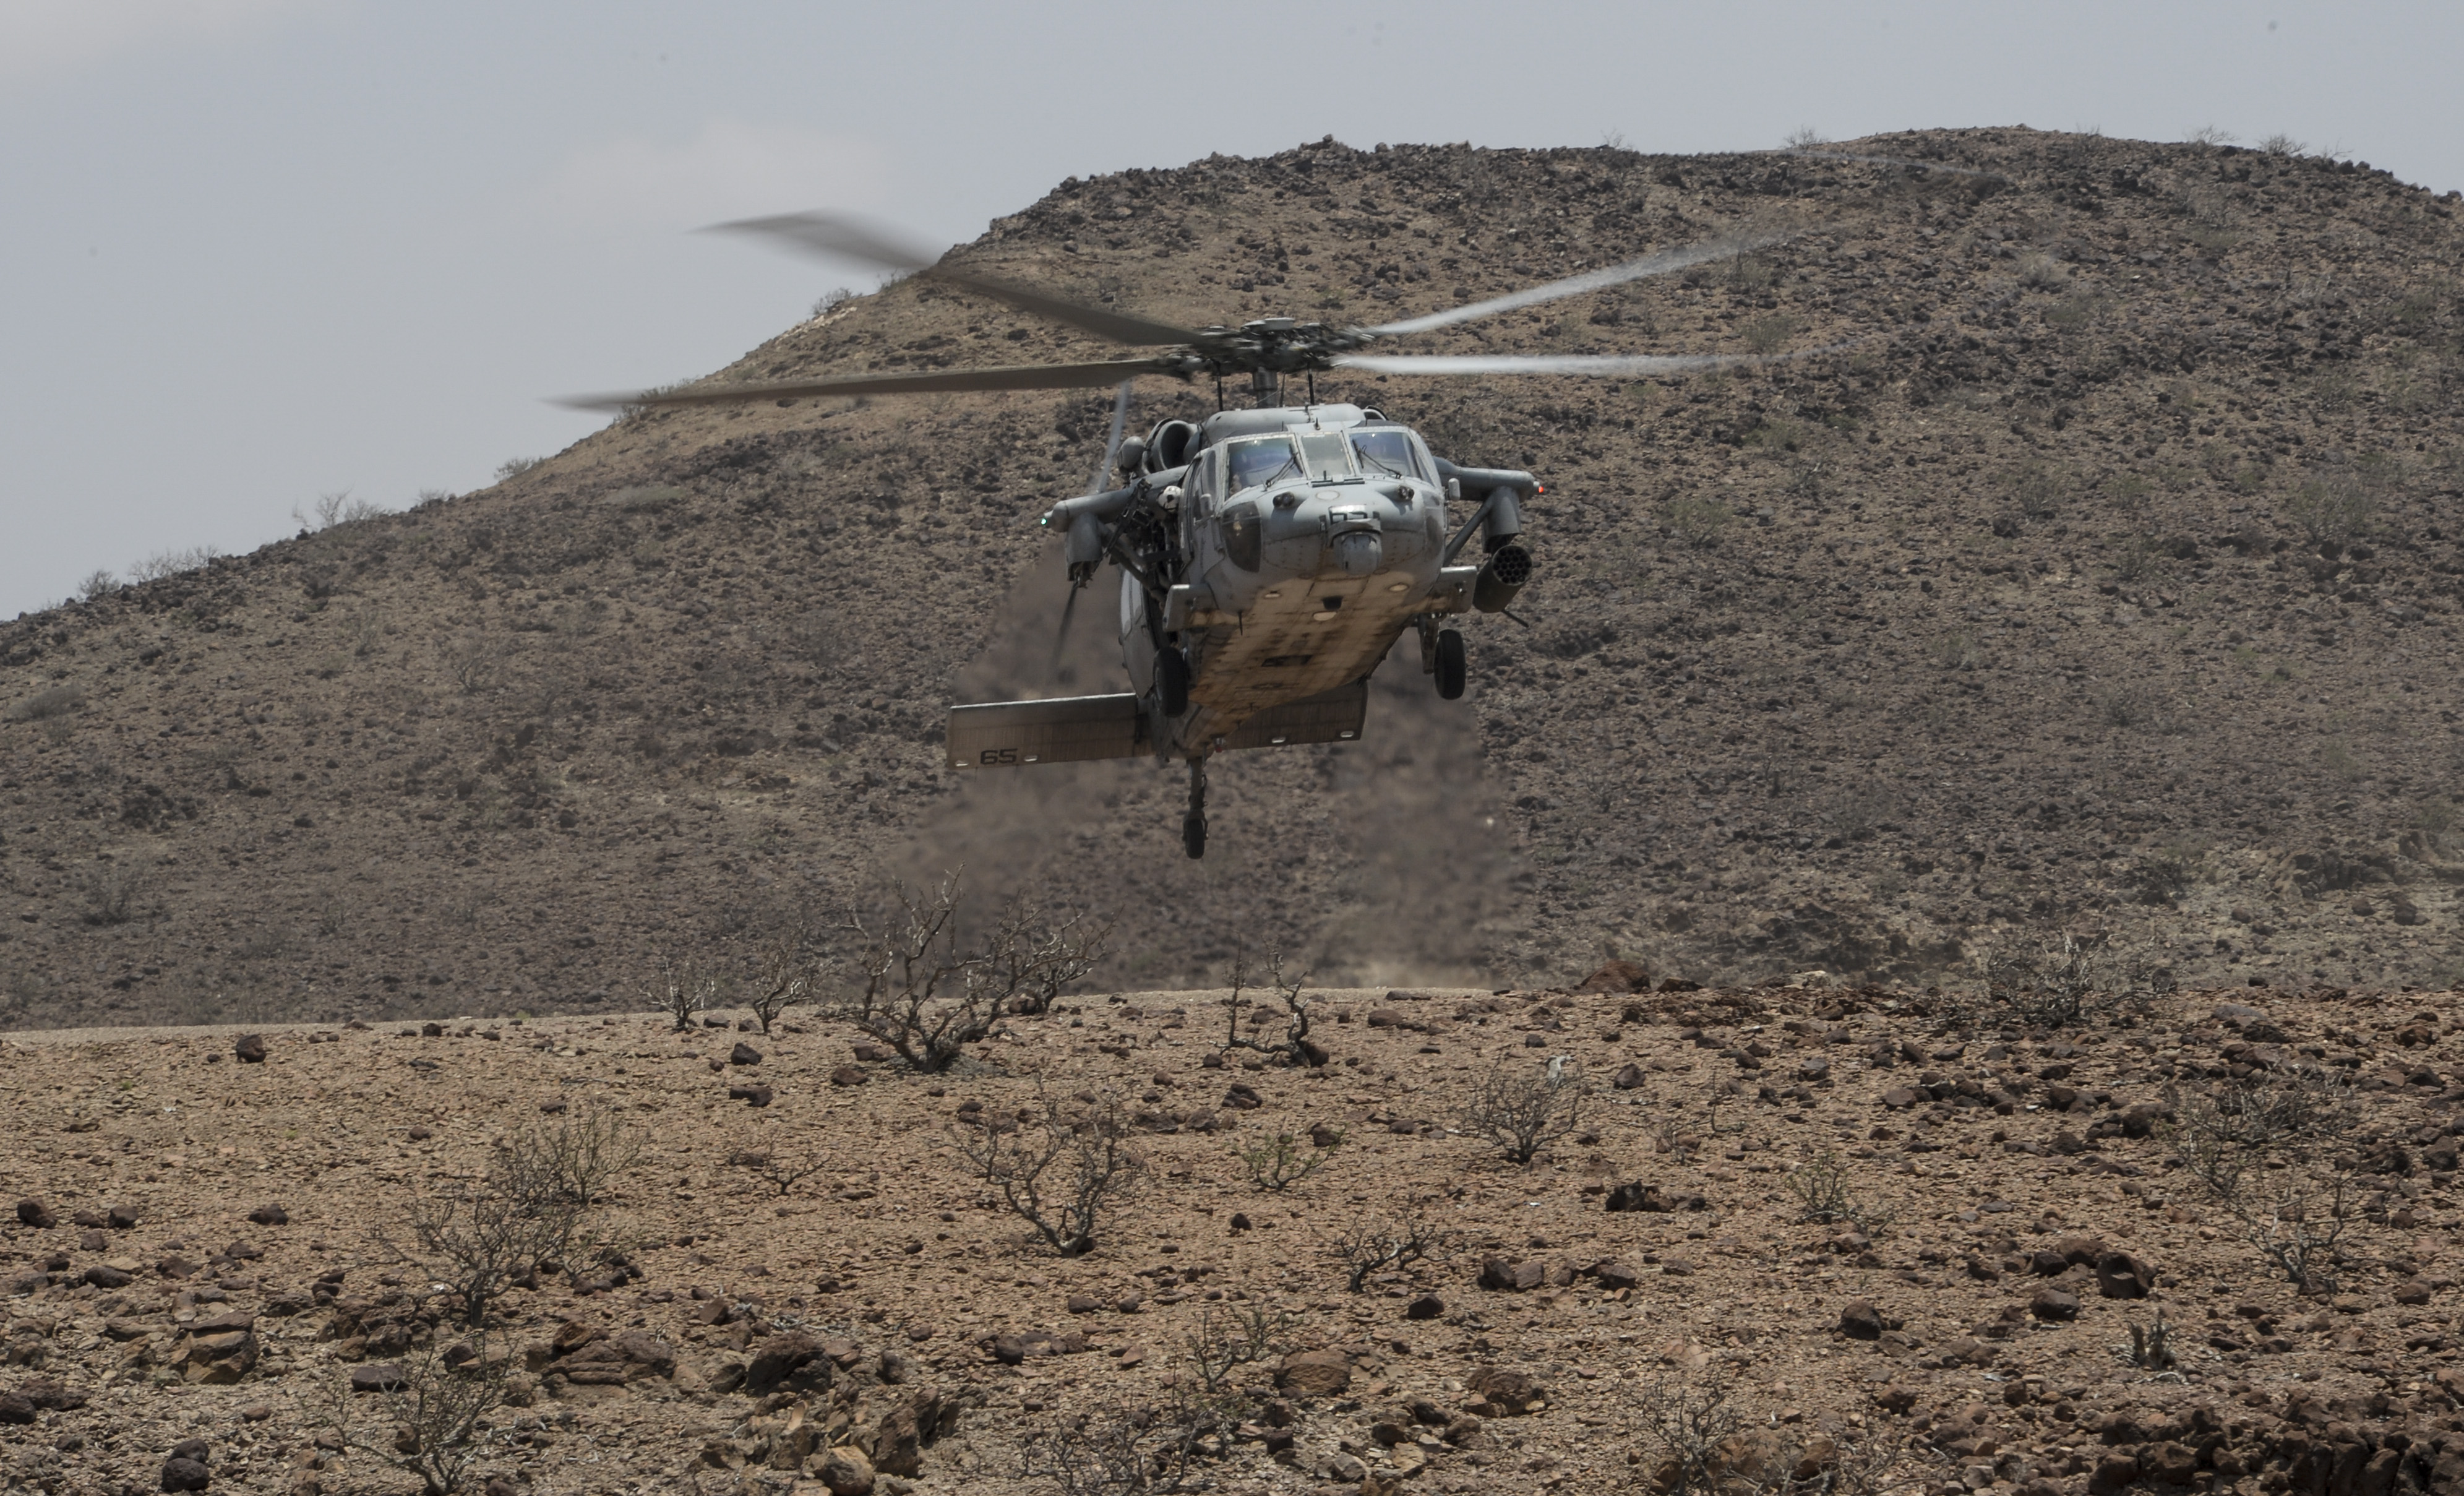 A U.S. Navy SH-60 Seahawk performs a touch-and-go landing during Exercise Alligator Dagger at Arta Range, Djibouti, April 9, 2017. Exercise Alligator Dagger enables the Marines and Sailors to enhance their capabilities and continually support maritime security operations. (U.S. Air National Guard photo by Staff Sgt. Christian Jadot)